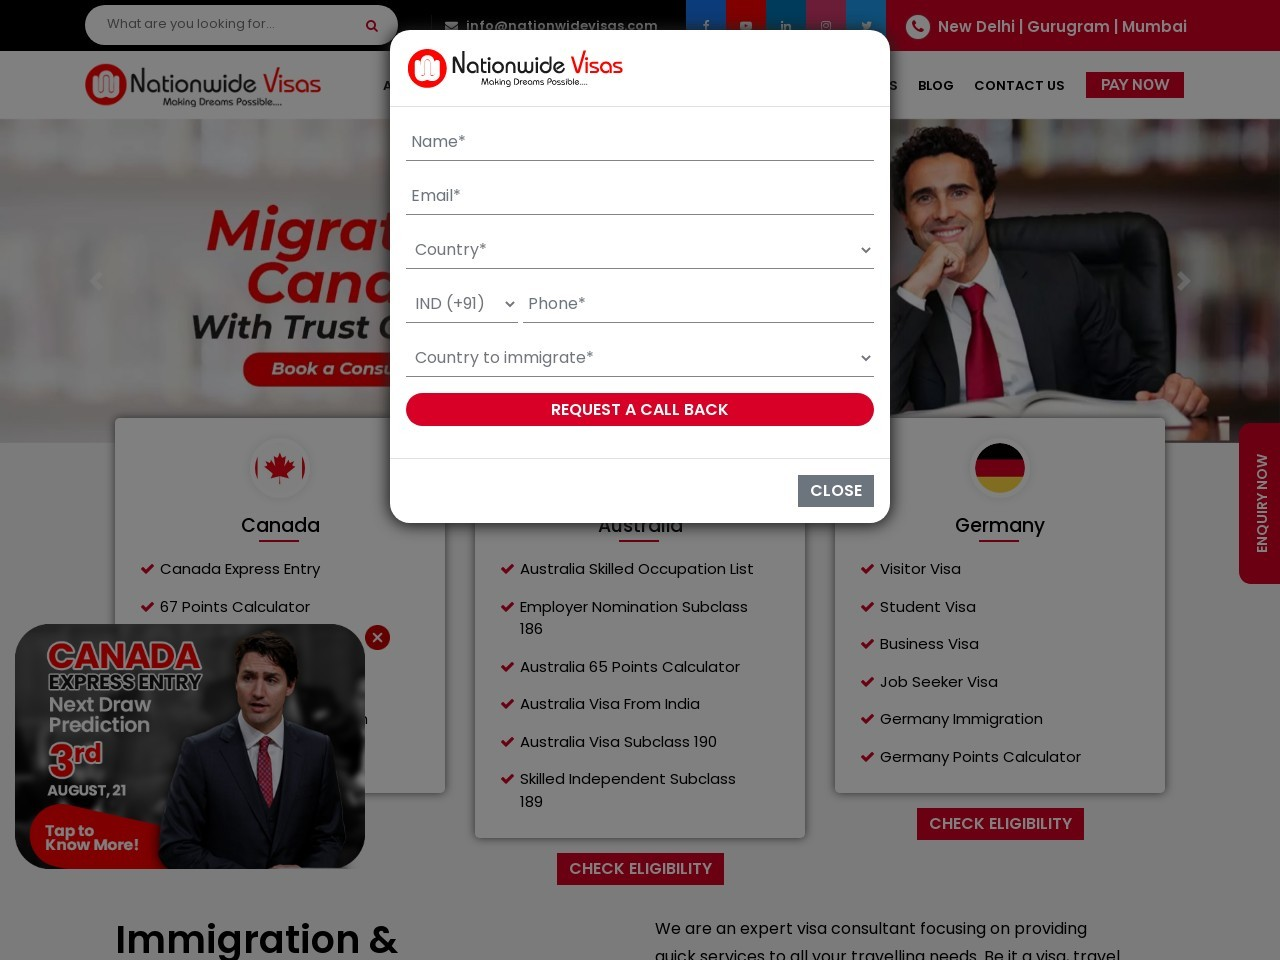 Best Immigration Consultants In Delhi For Canada PR | Nationwide Visas